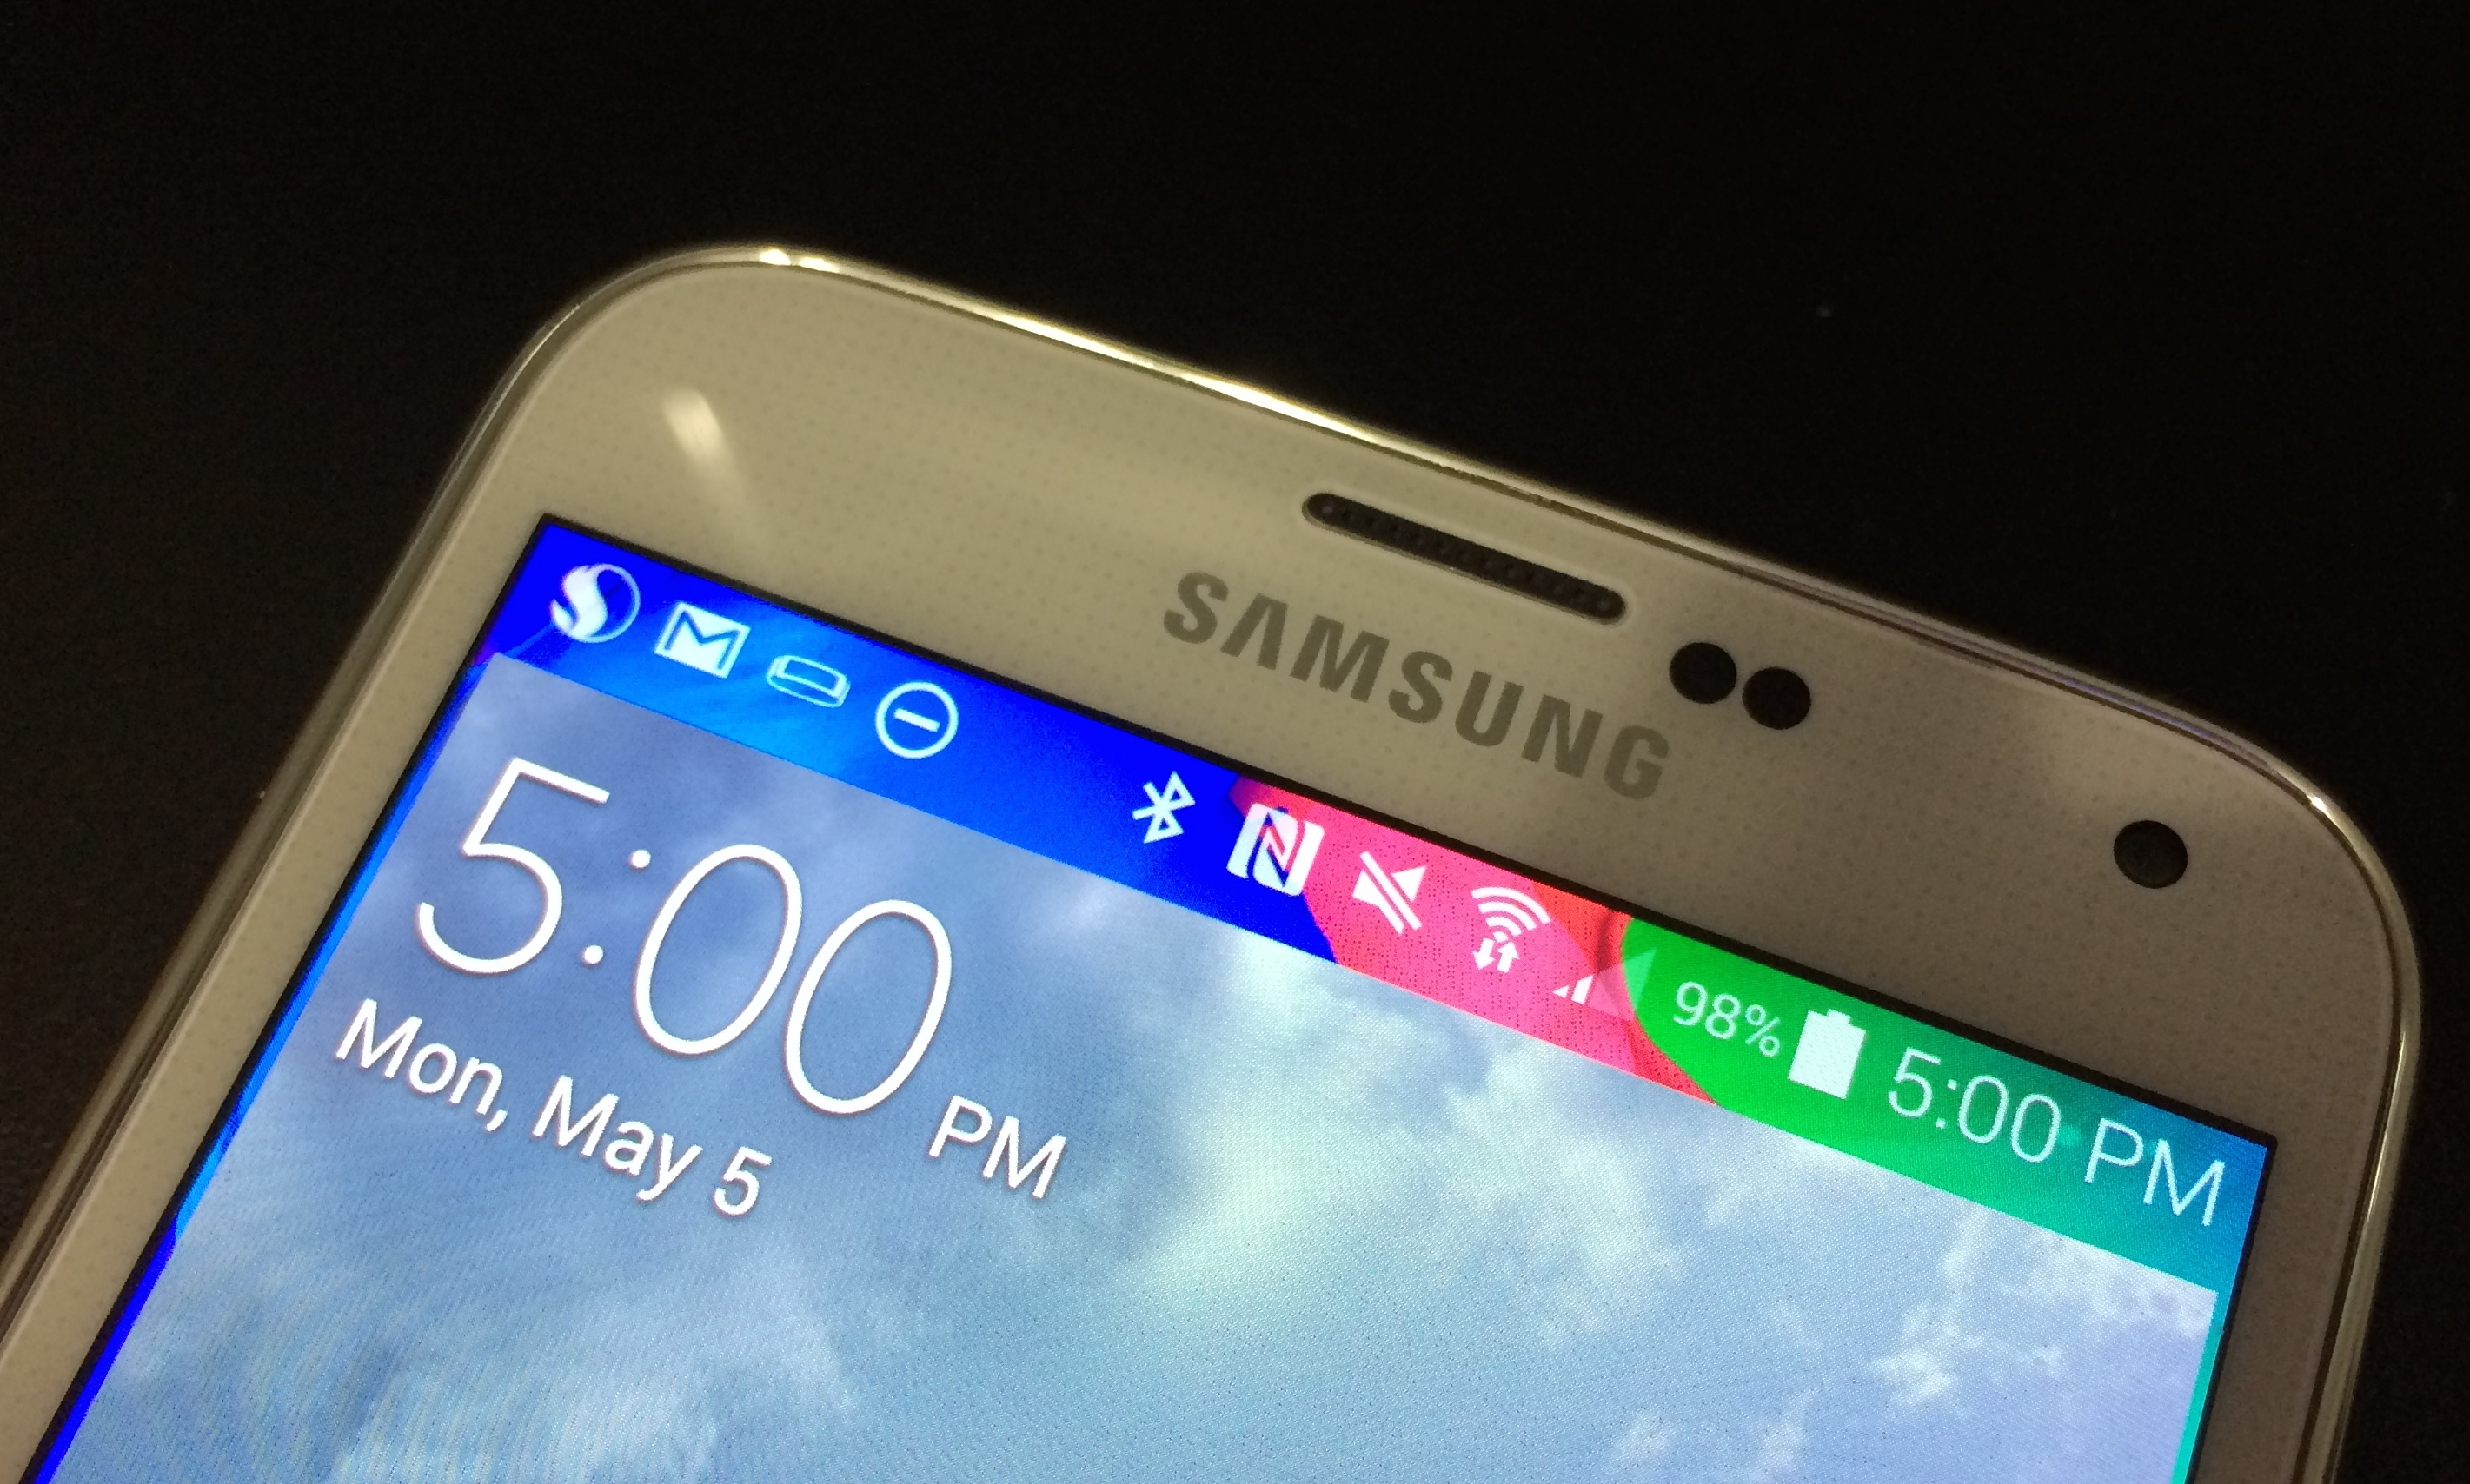 Learn How To Use Blocking Mode On The Galaxy S5